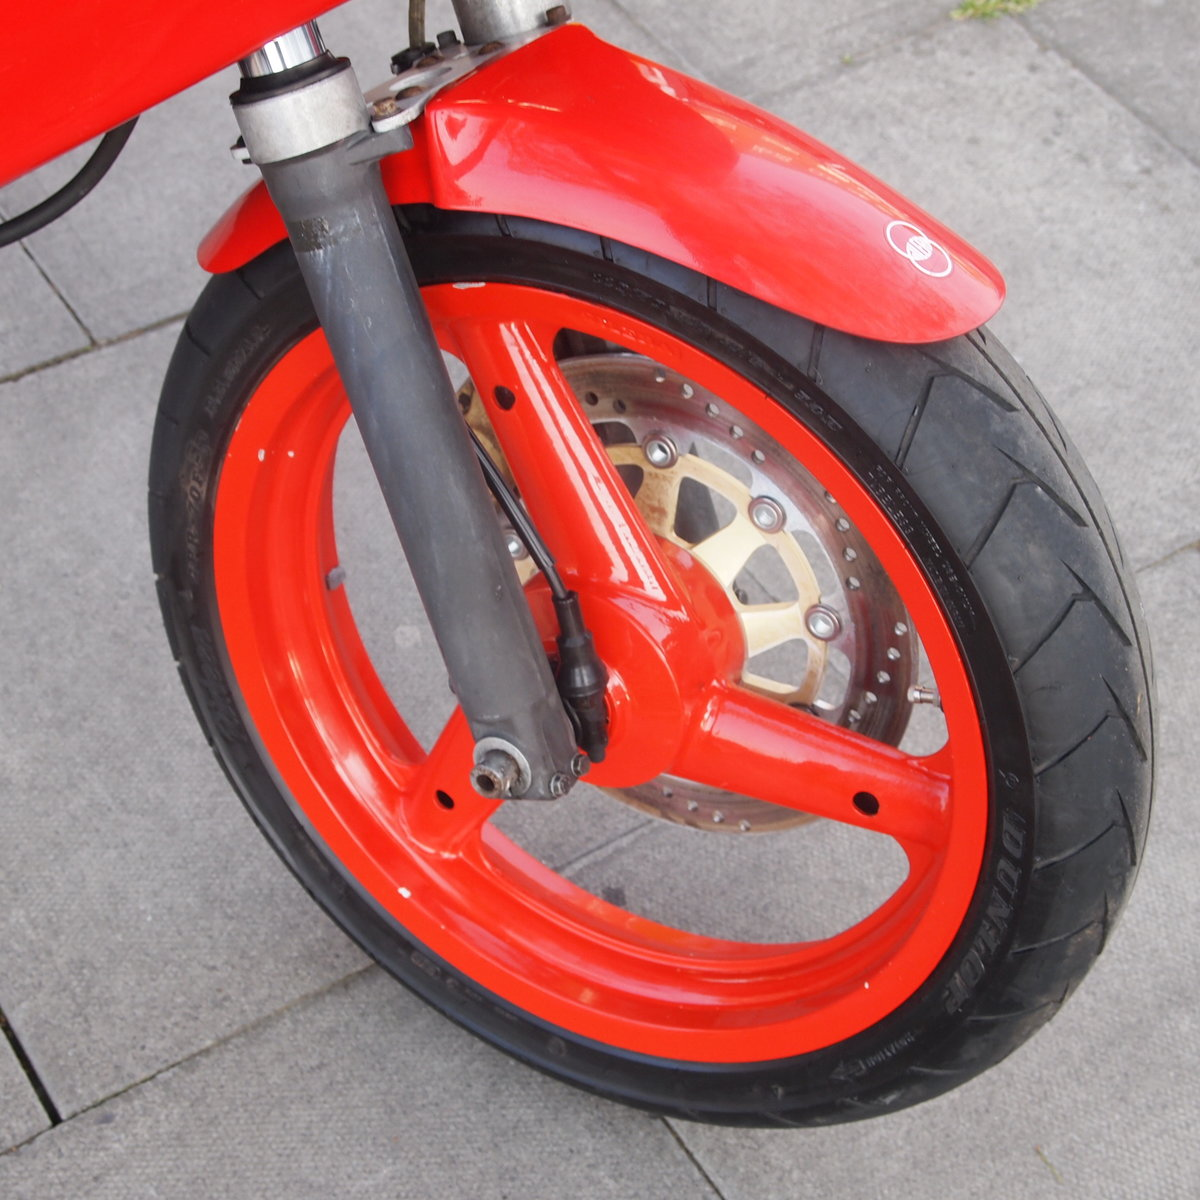 1989 Gilera Saturno Fitted With Running Paris Daker 550cc Unit. SOLD (picture 3 of 6)